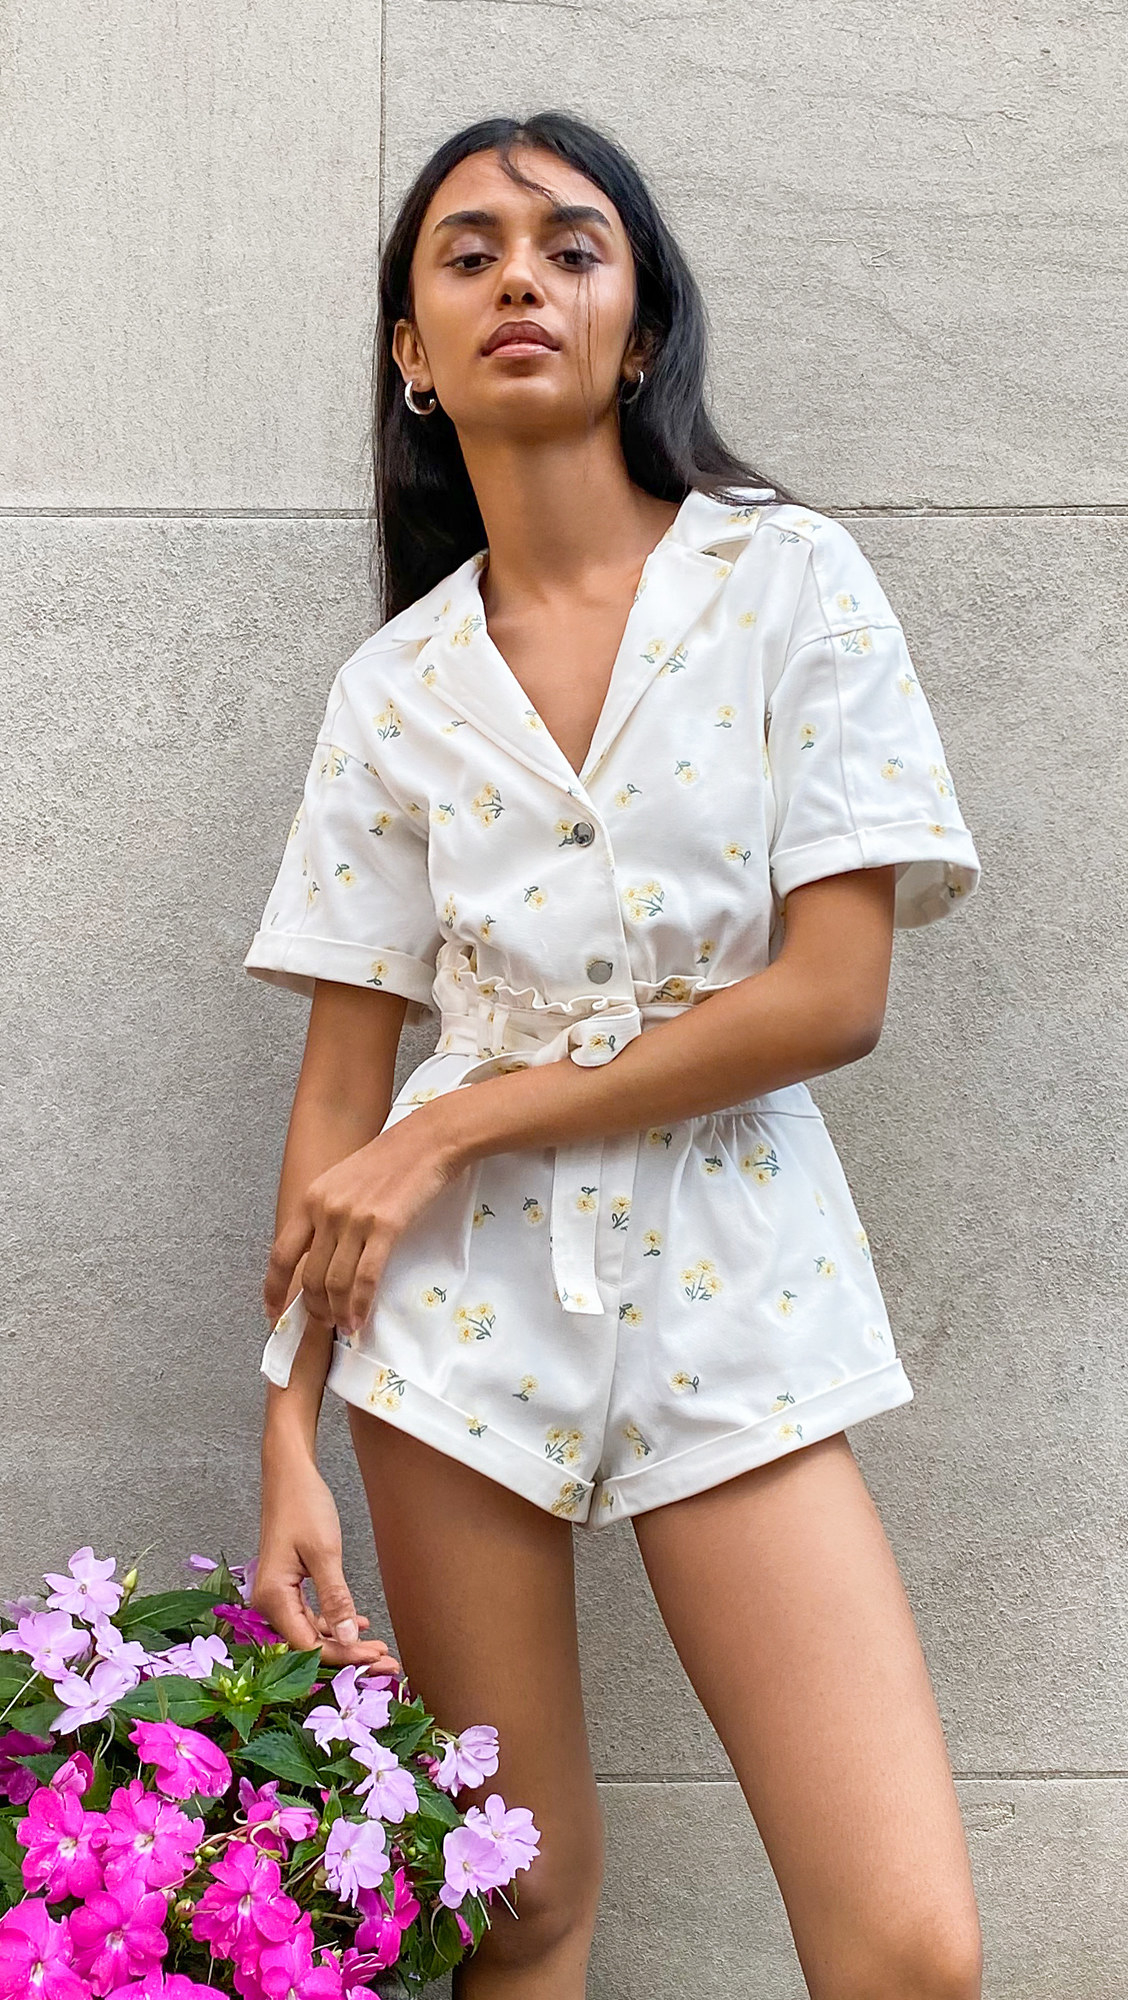 A model wearing the white romper with little yellow flower embroidery and cuffed shorts and short sleeves